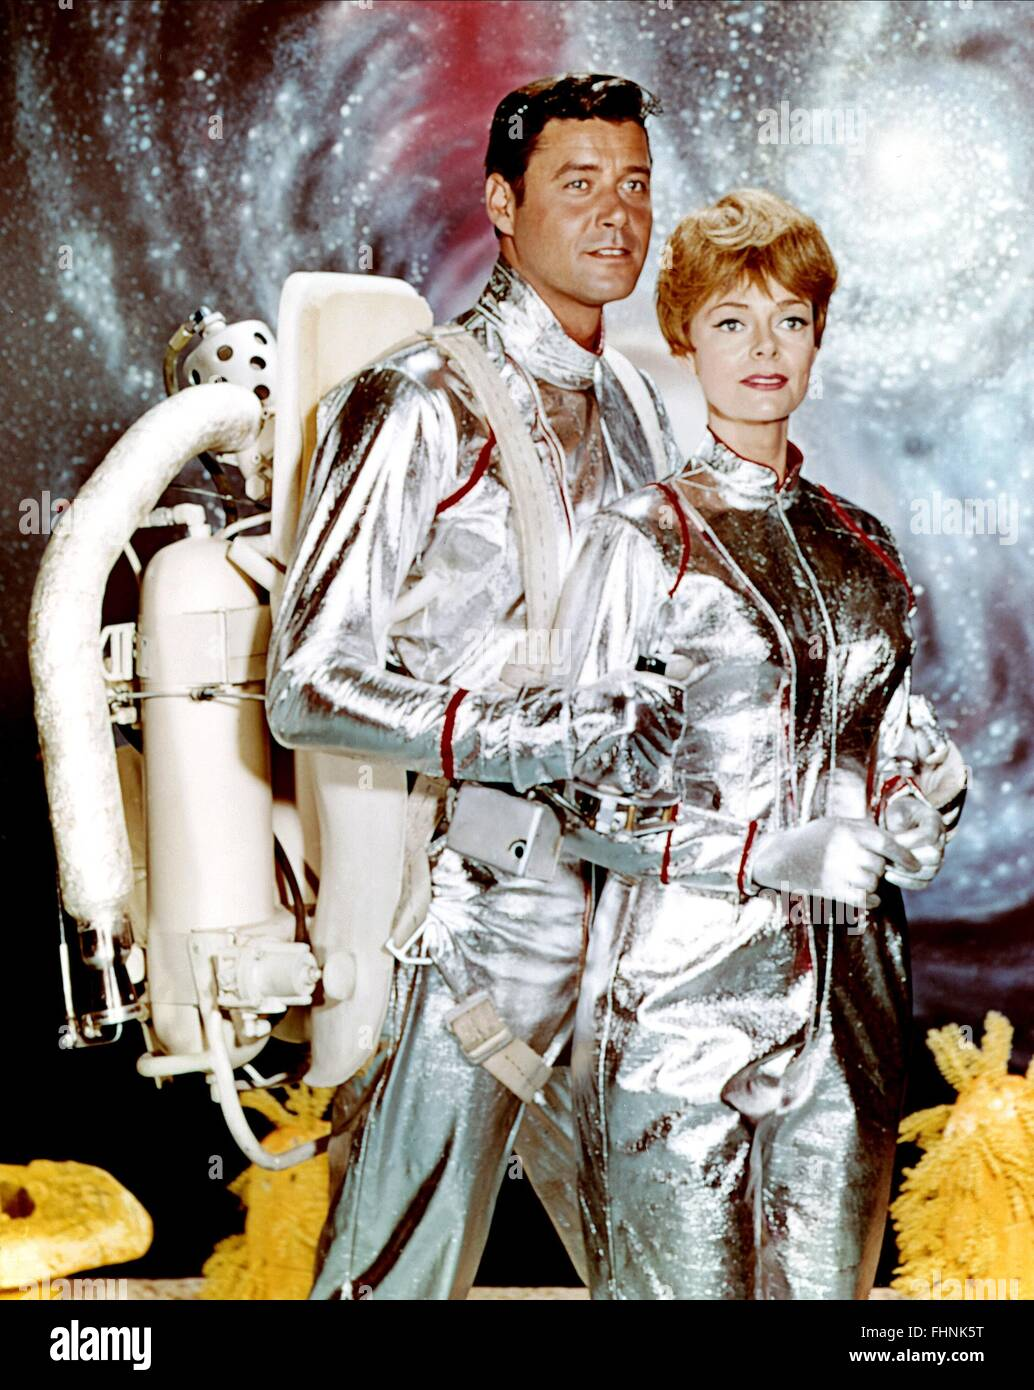 Image result for lost in space guy williams